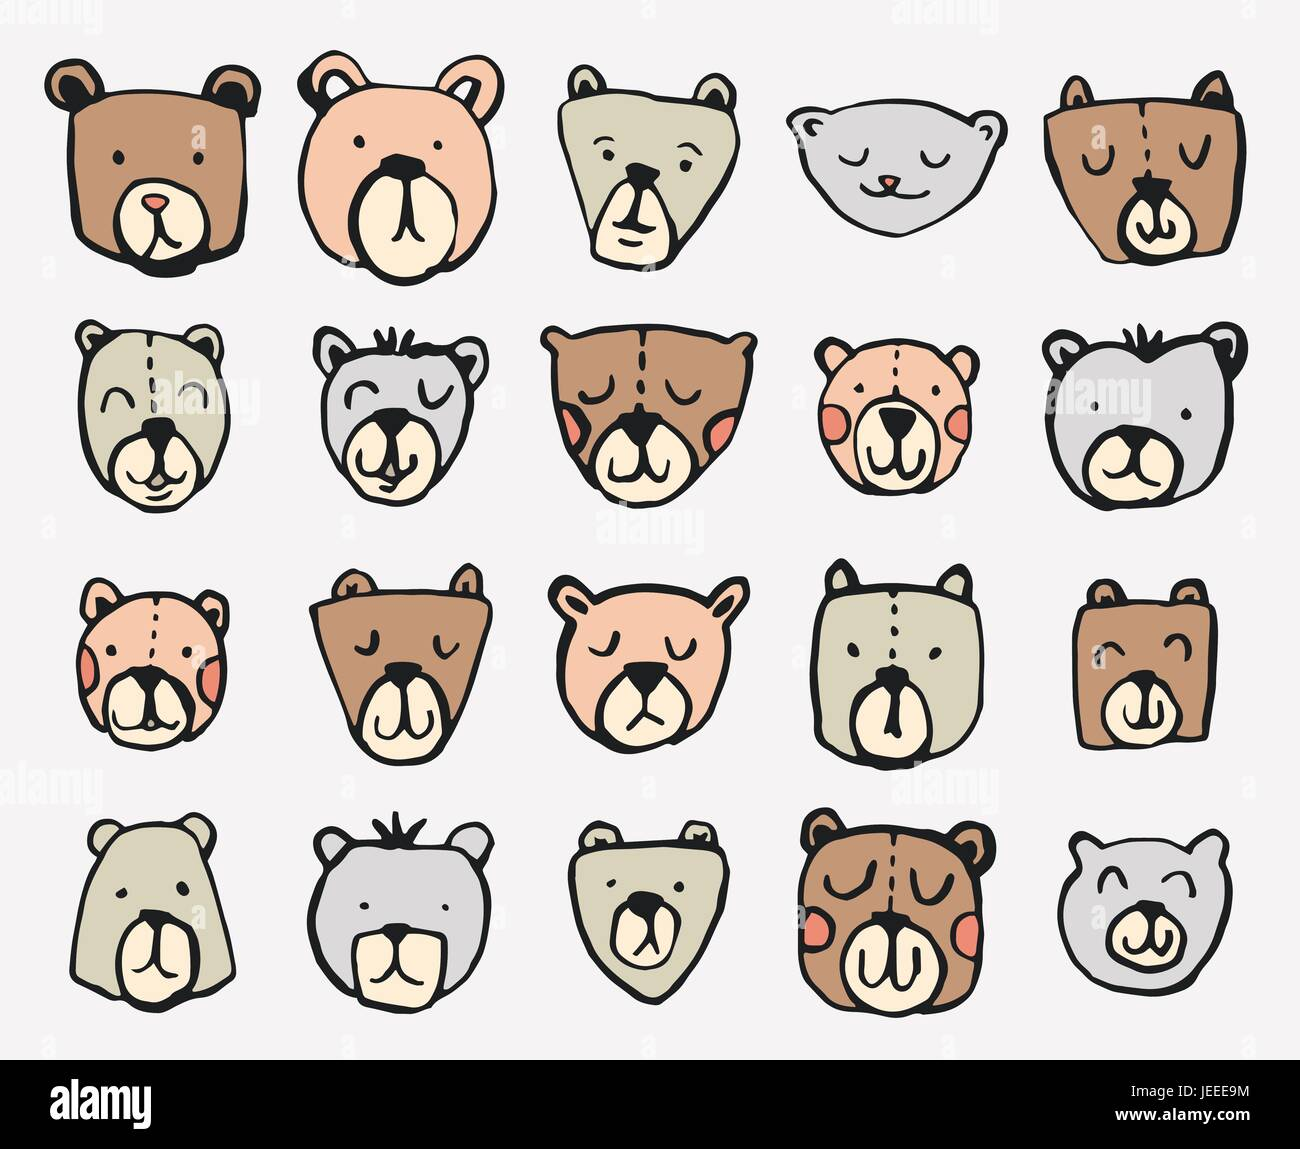 Vector icon set of teddy bears - Stock Vector